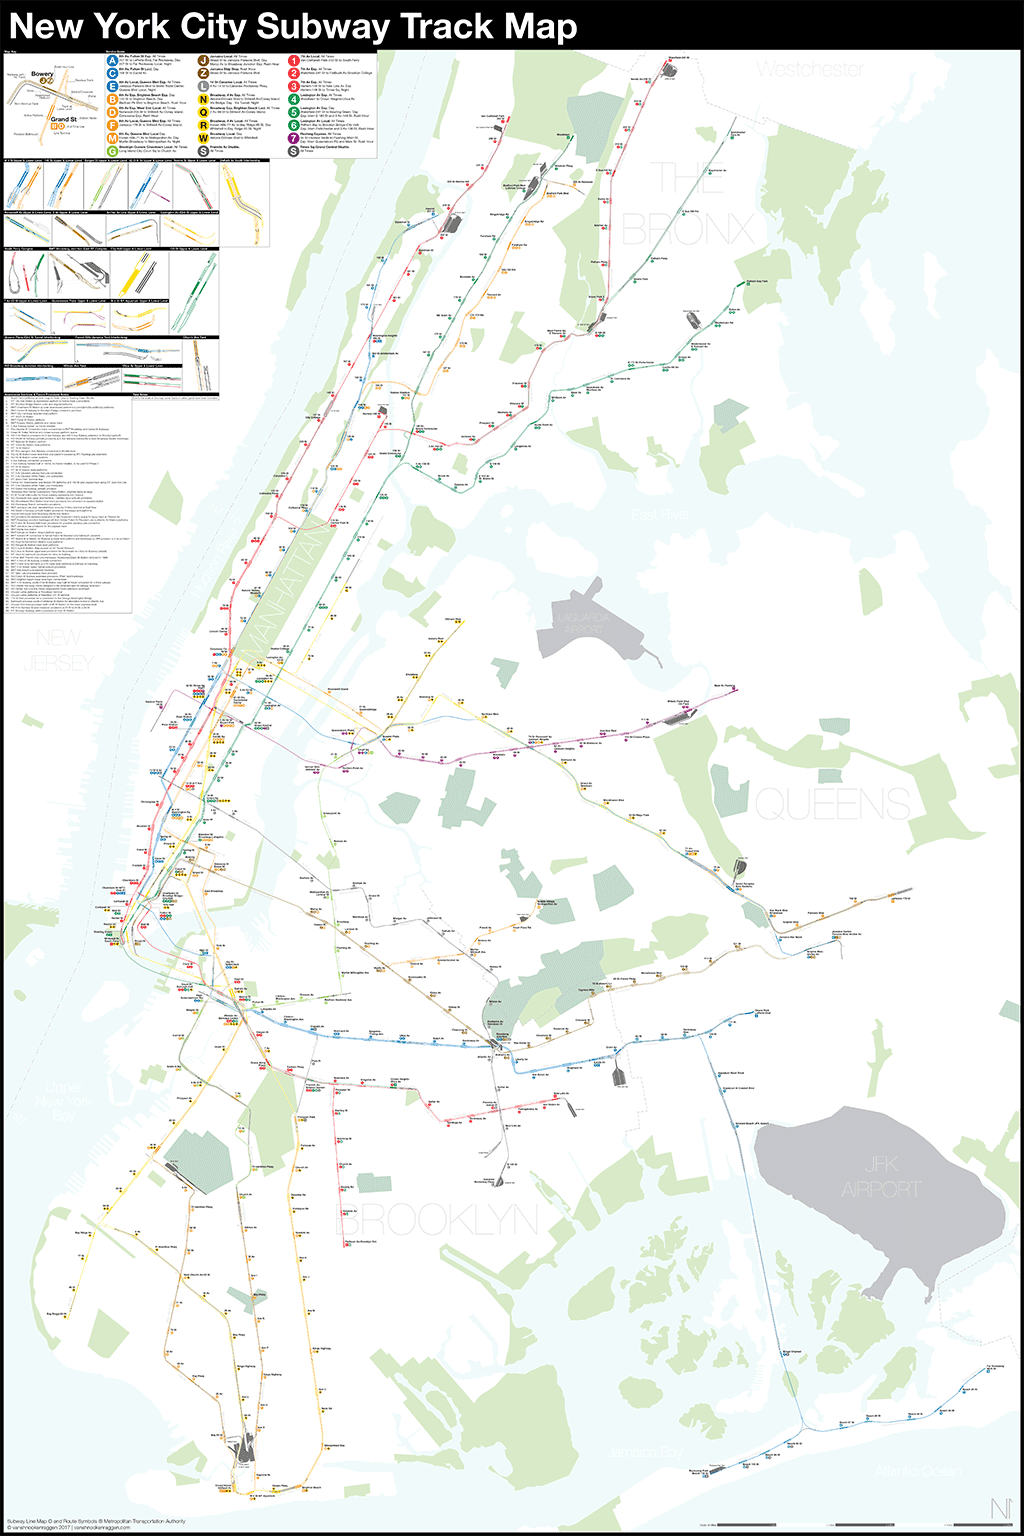 A Complete And Geographically Accurate Nyc Subway Track Map